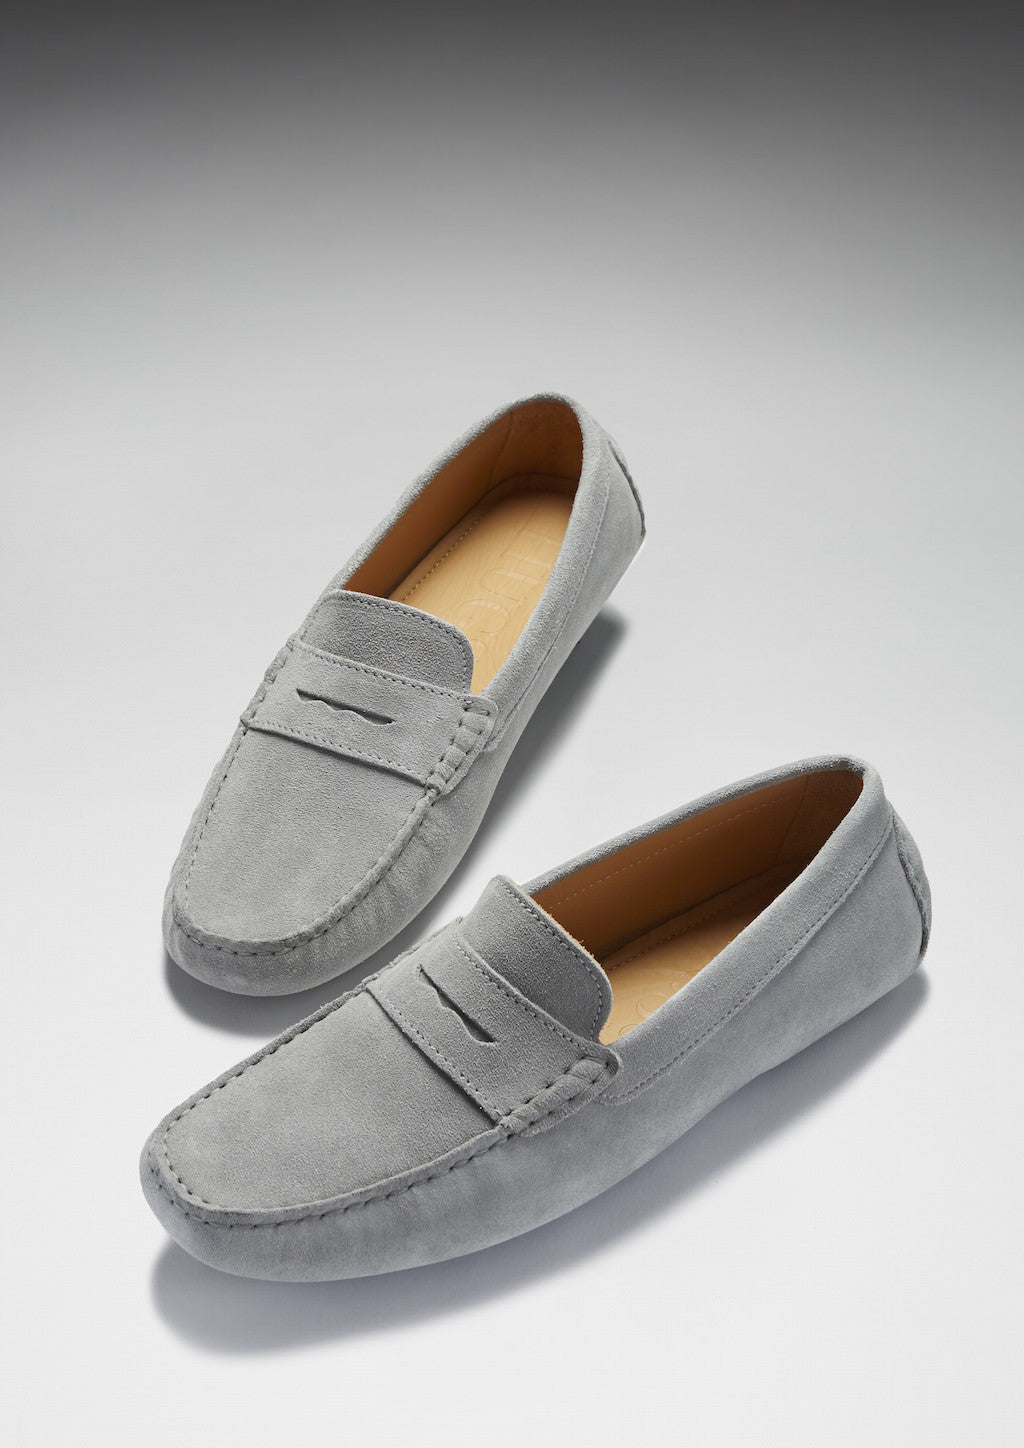 Classic Penny Loafers, dove grey suede - Hugs & Co.